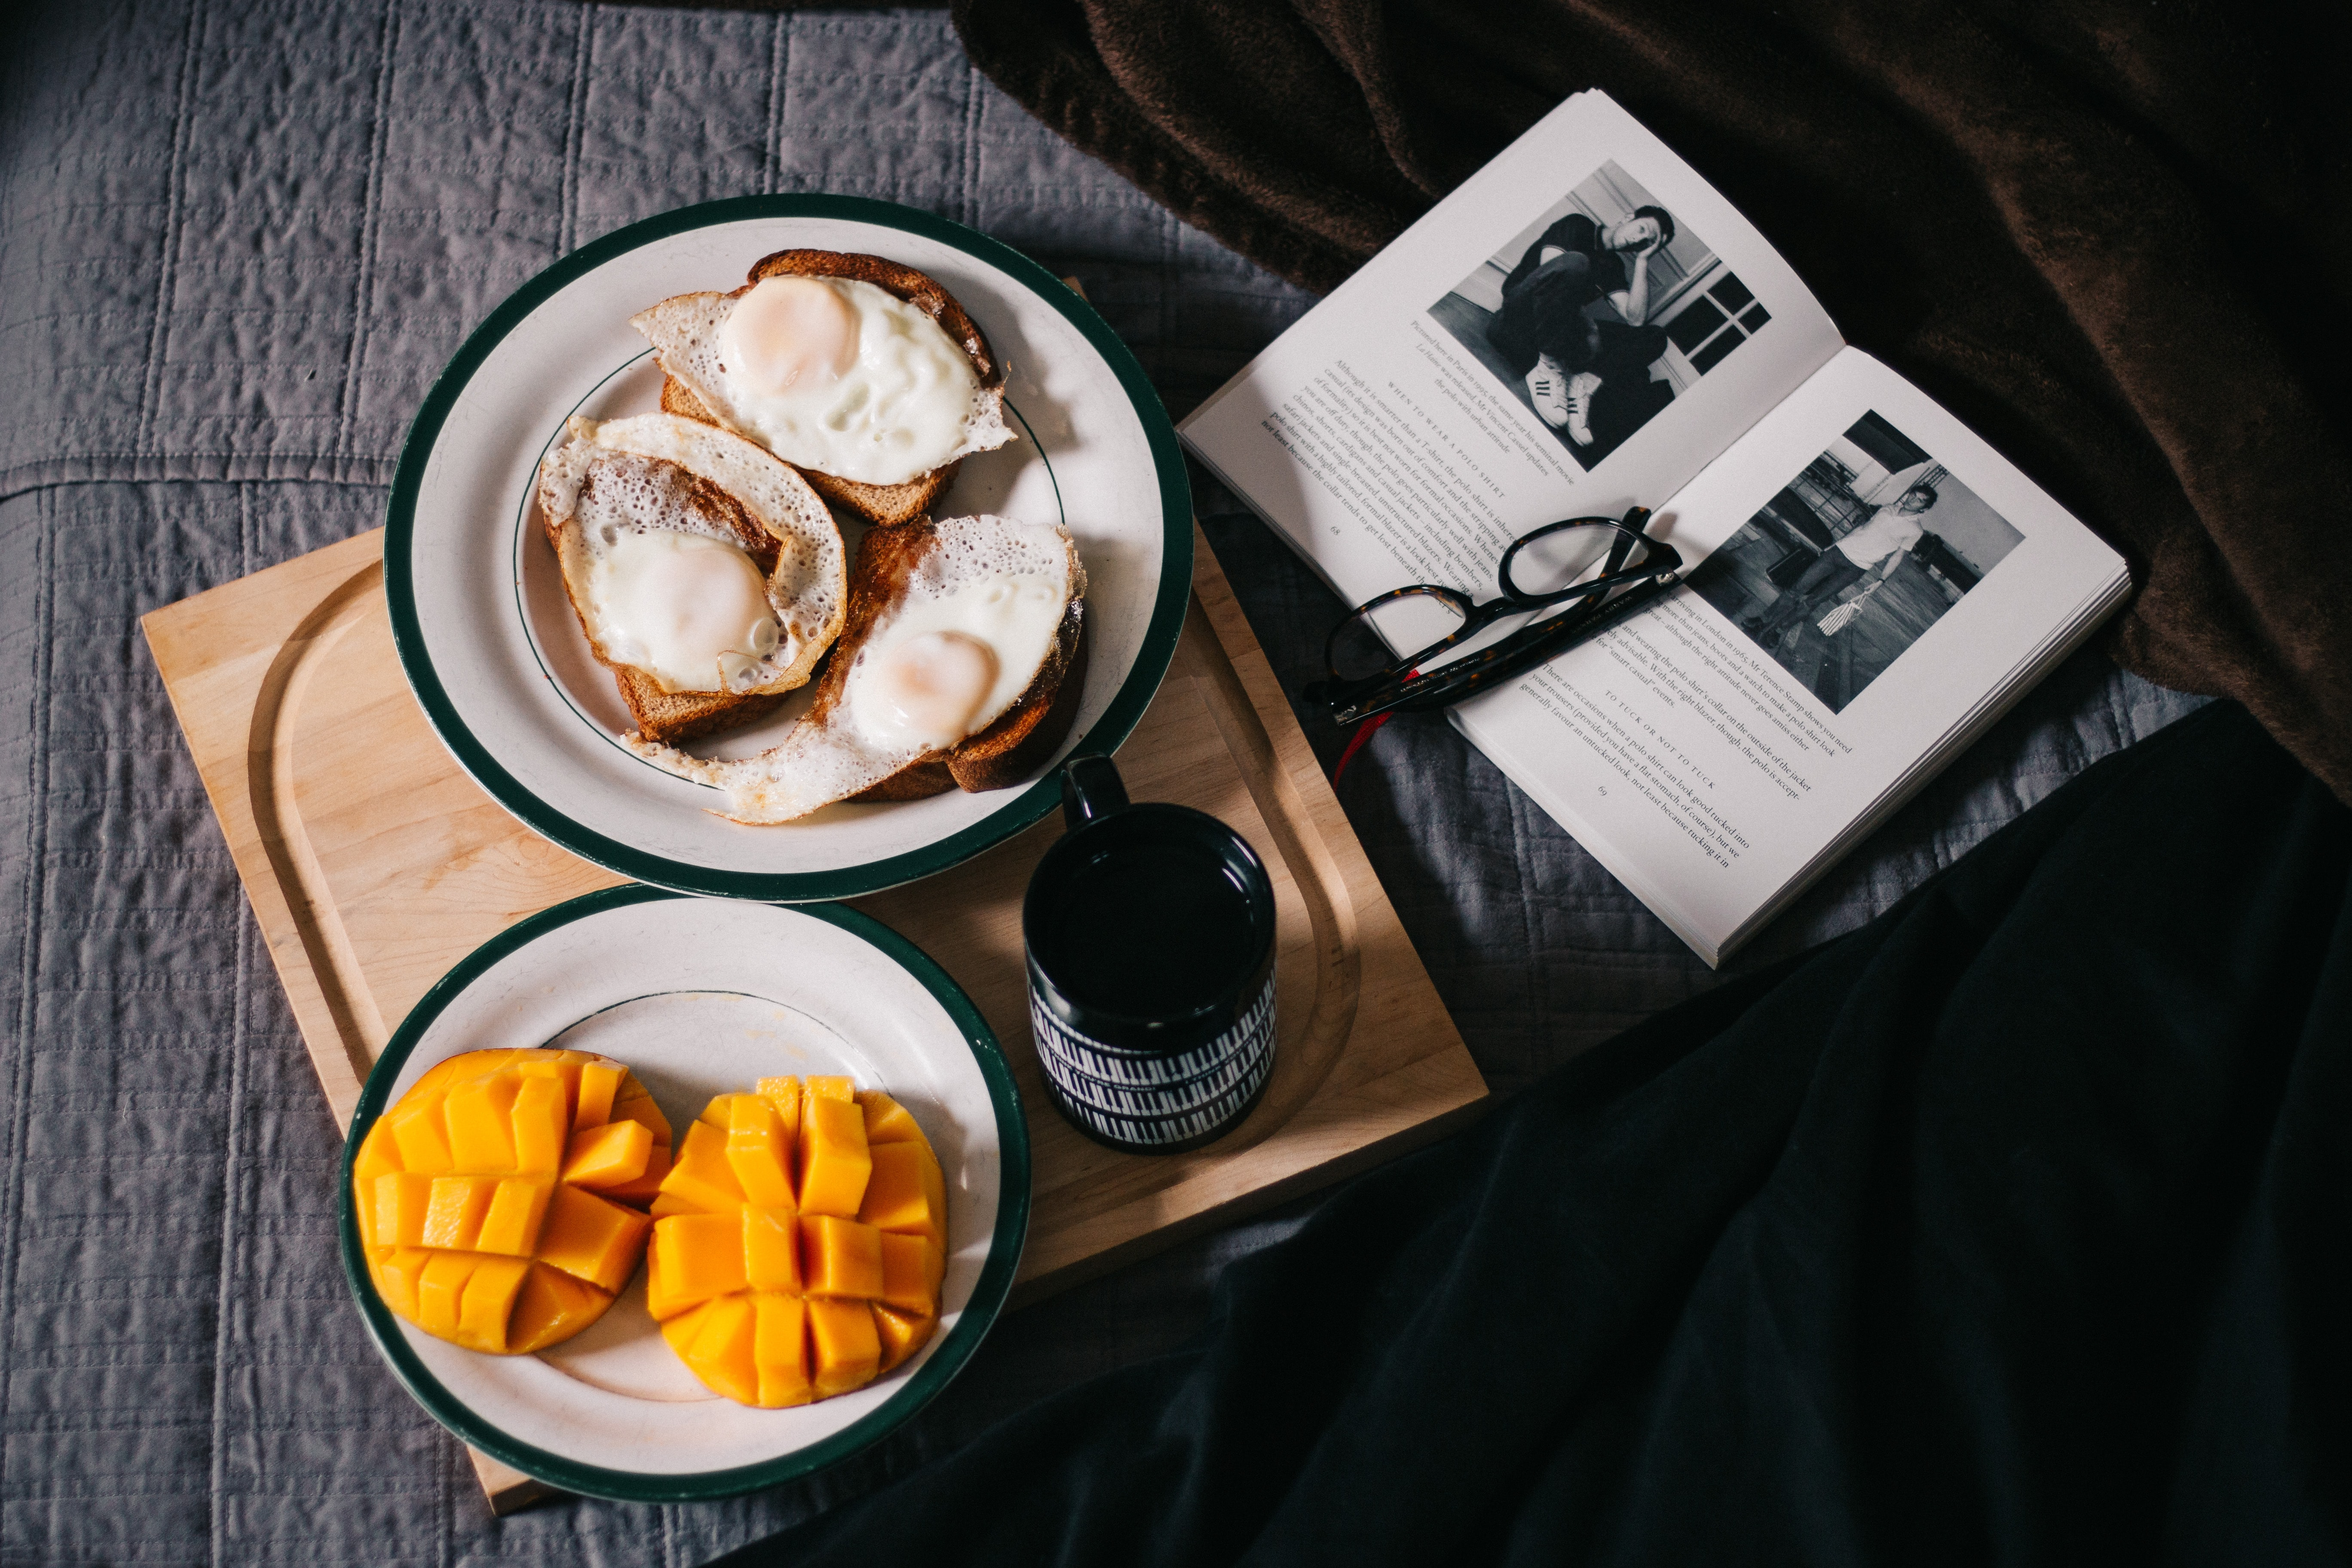 A breakfast spread including mango, fried eggs, and coffee on a wooden serving board next to a book and glasses on a bed